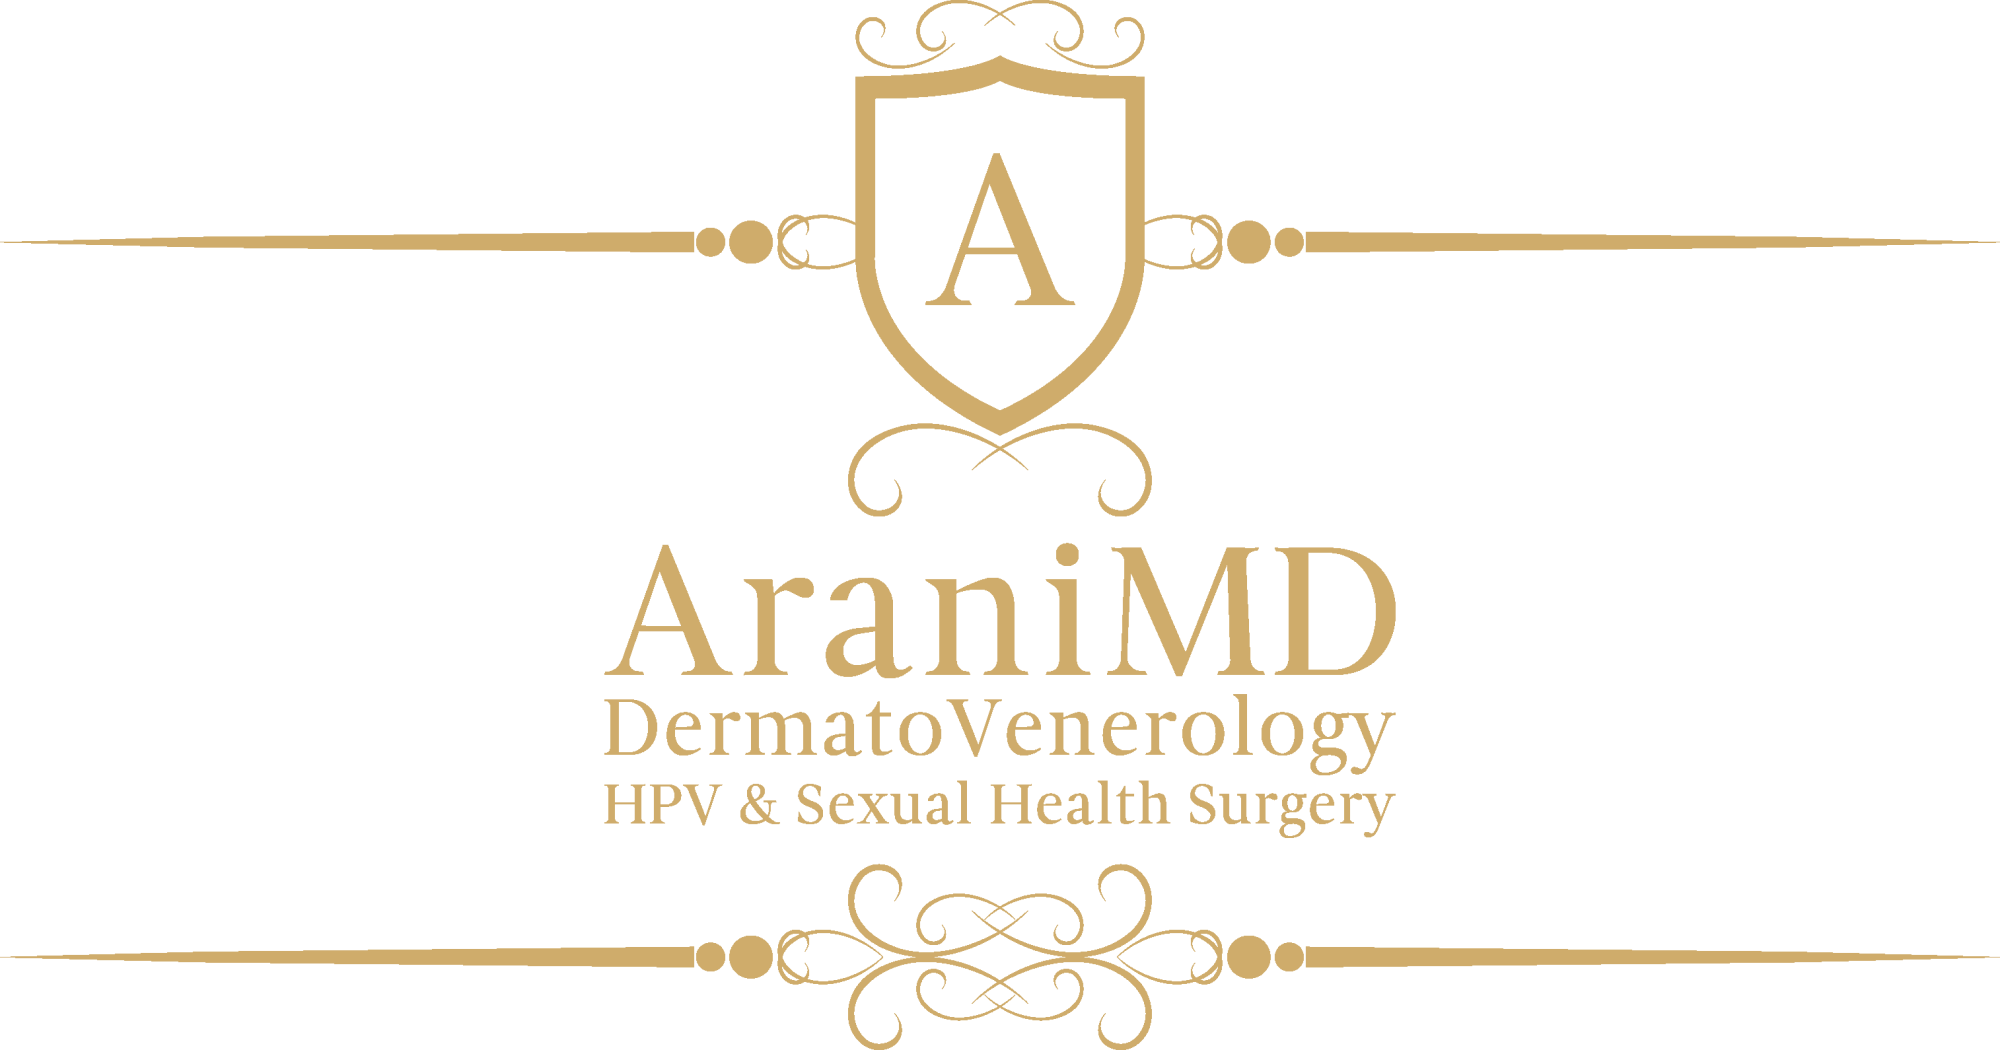 hight resolution of consult your experienced physician before treating your genital warts hpv genital warts and molluscum are infectious medical conditions and they need to be